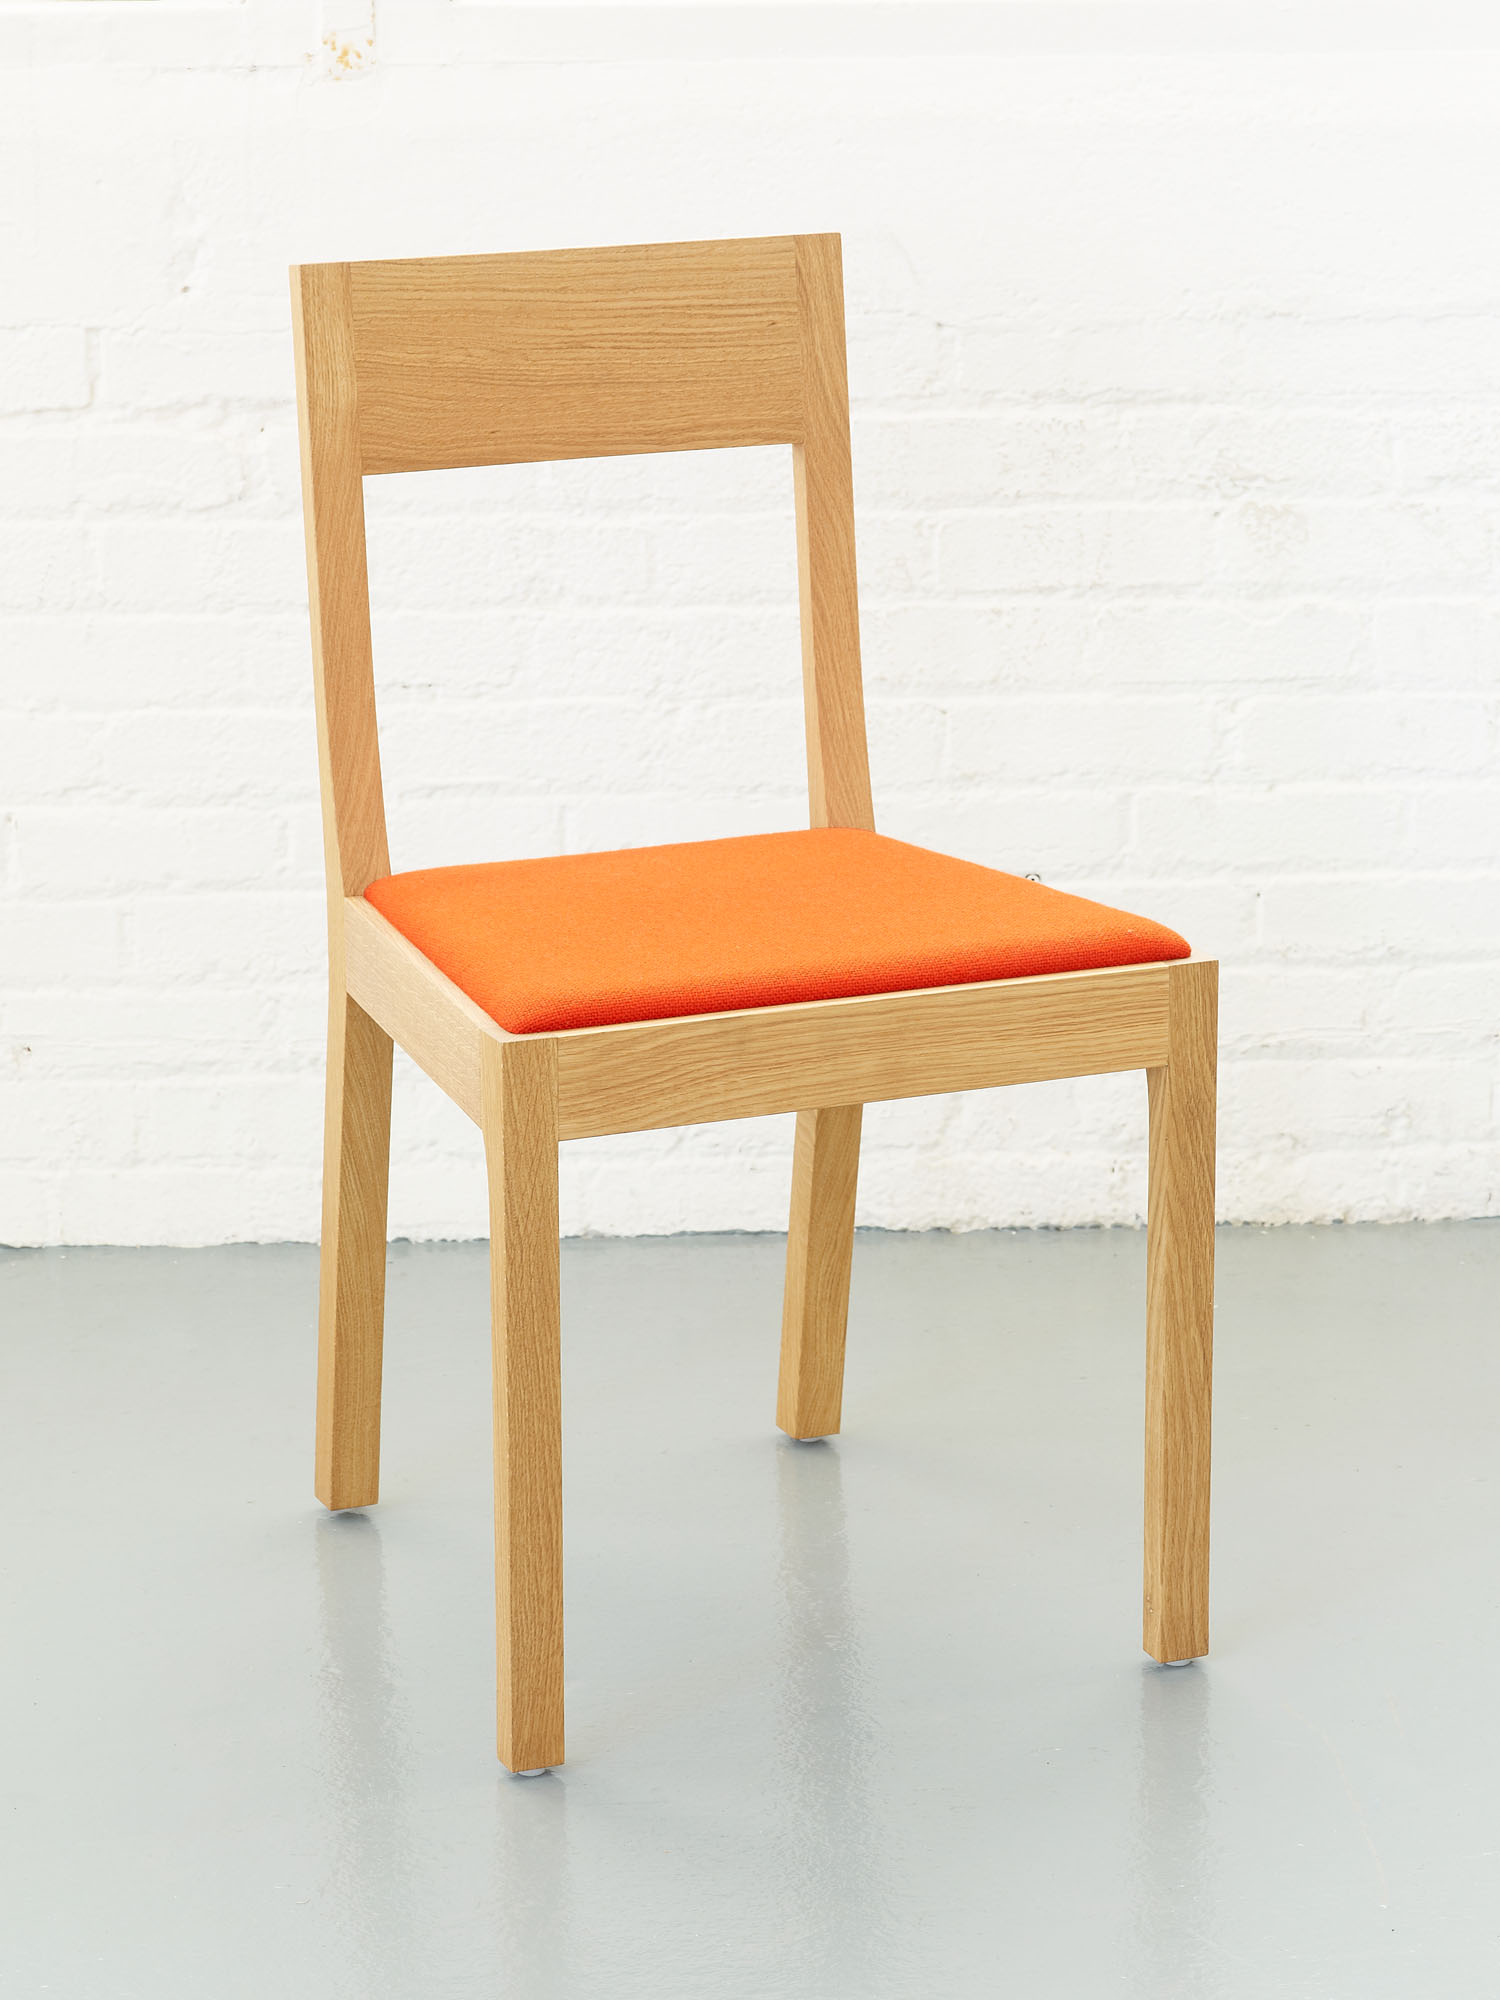 harriet chair 2.jpg